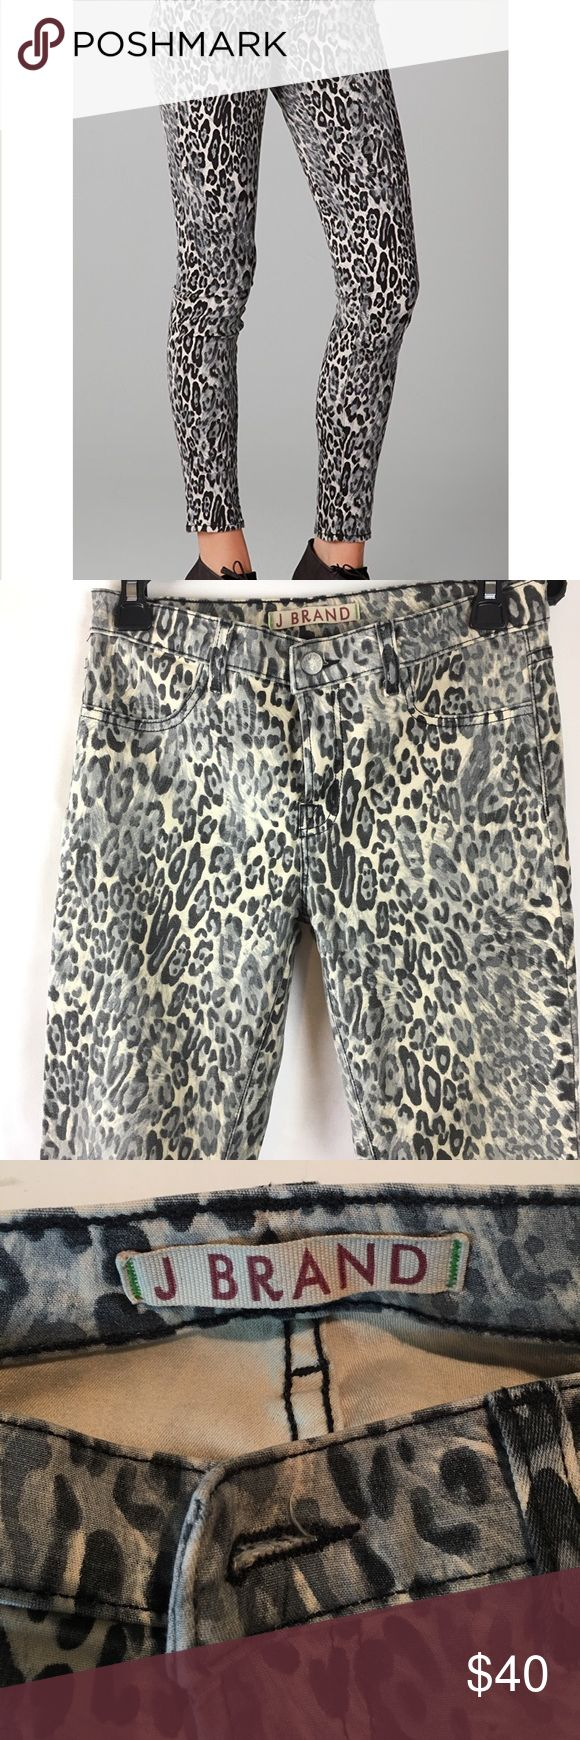 """J Brand Snow Leopard Leggings size 27 27 waist 30 inseam 8 1/2"""" rise Skinny legging made famous by Kardashians! Excellent condition! J Brand Jeans Skinny"""